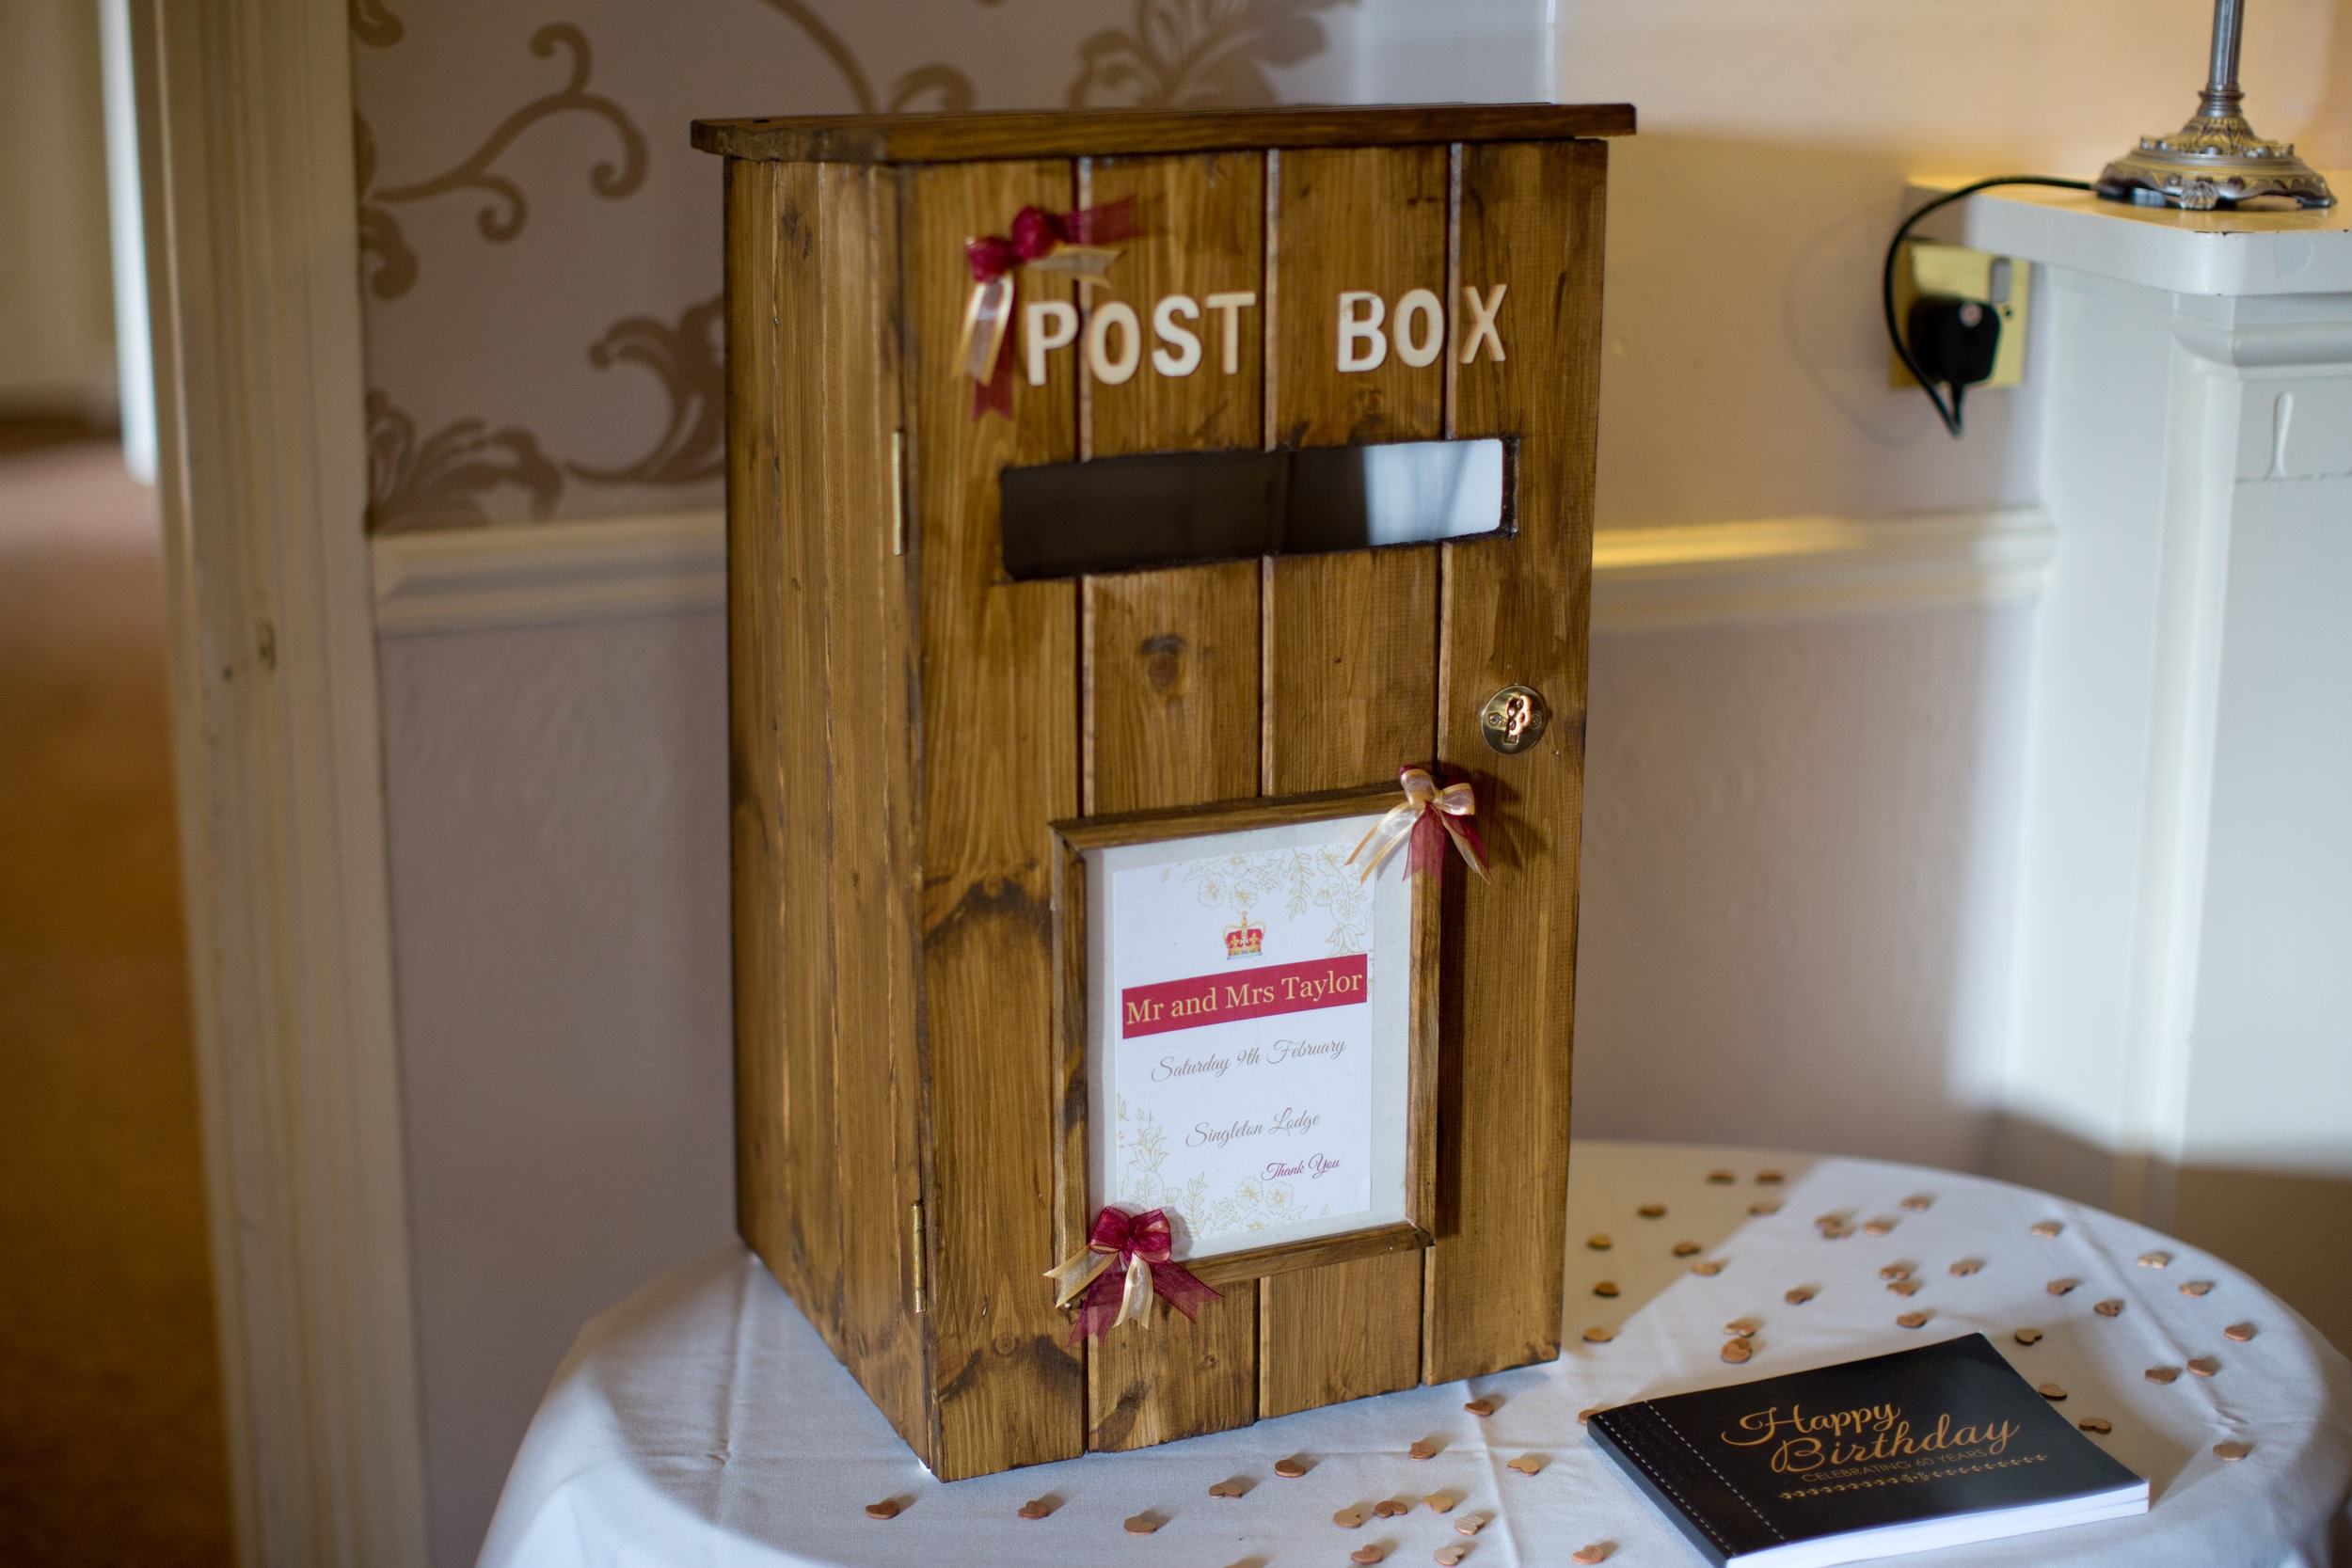 Post Boxes & Baskets